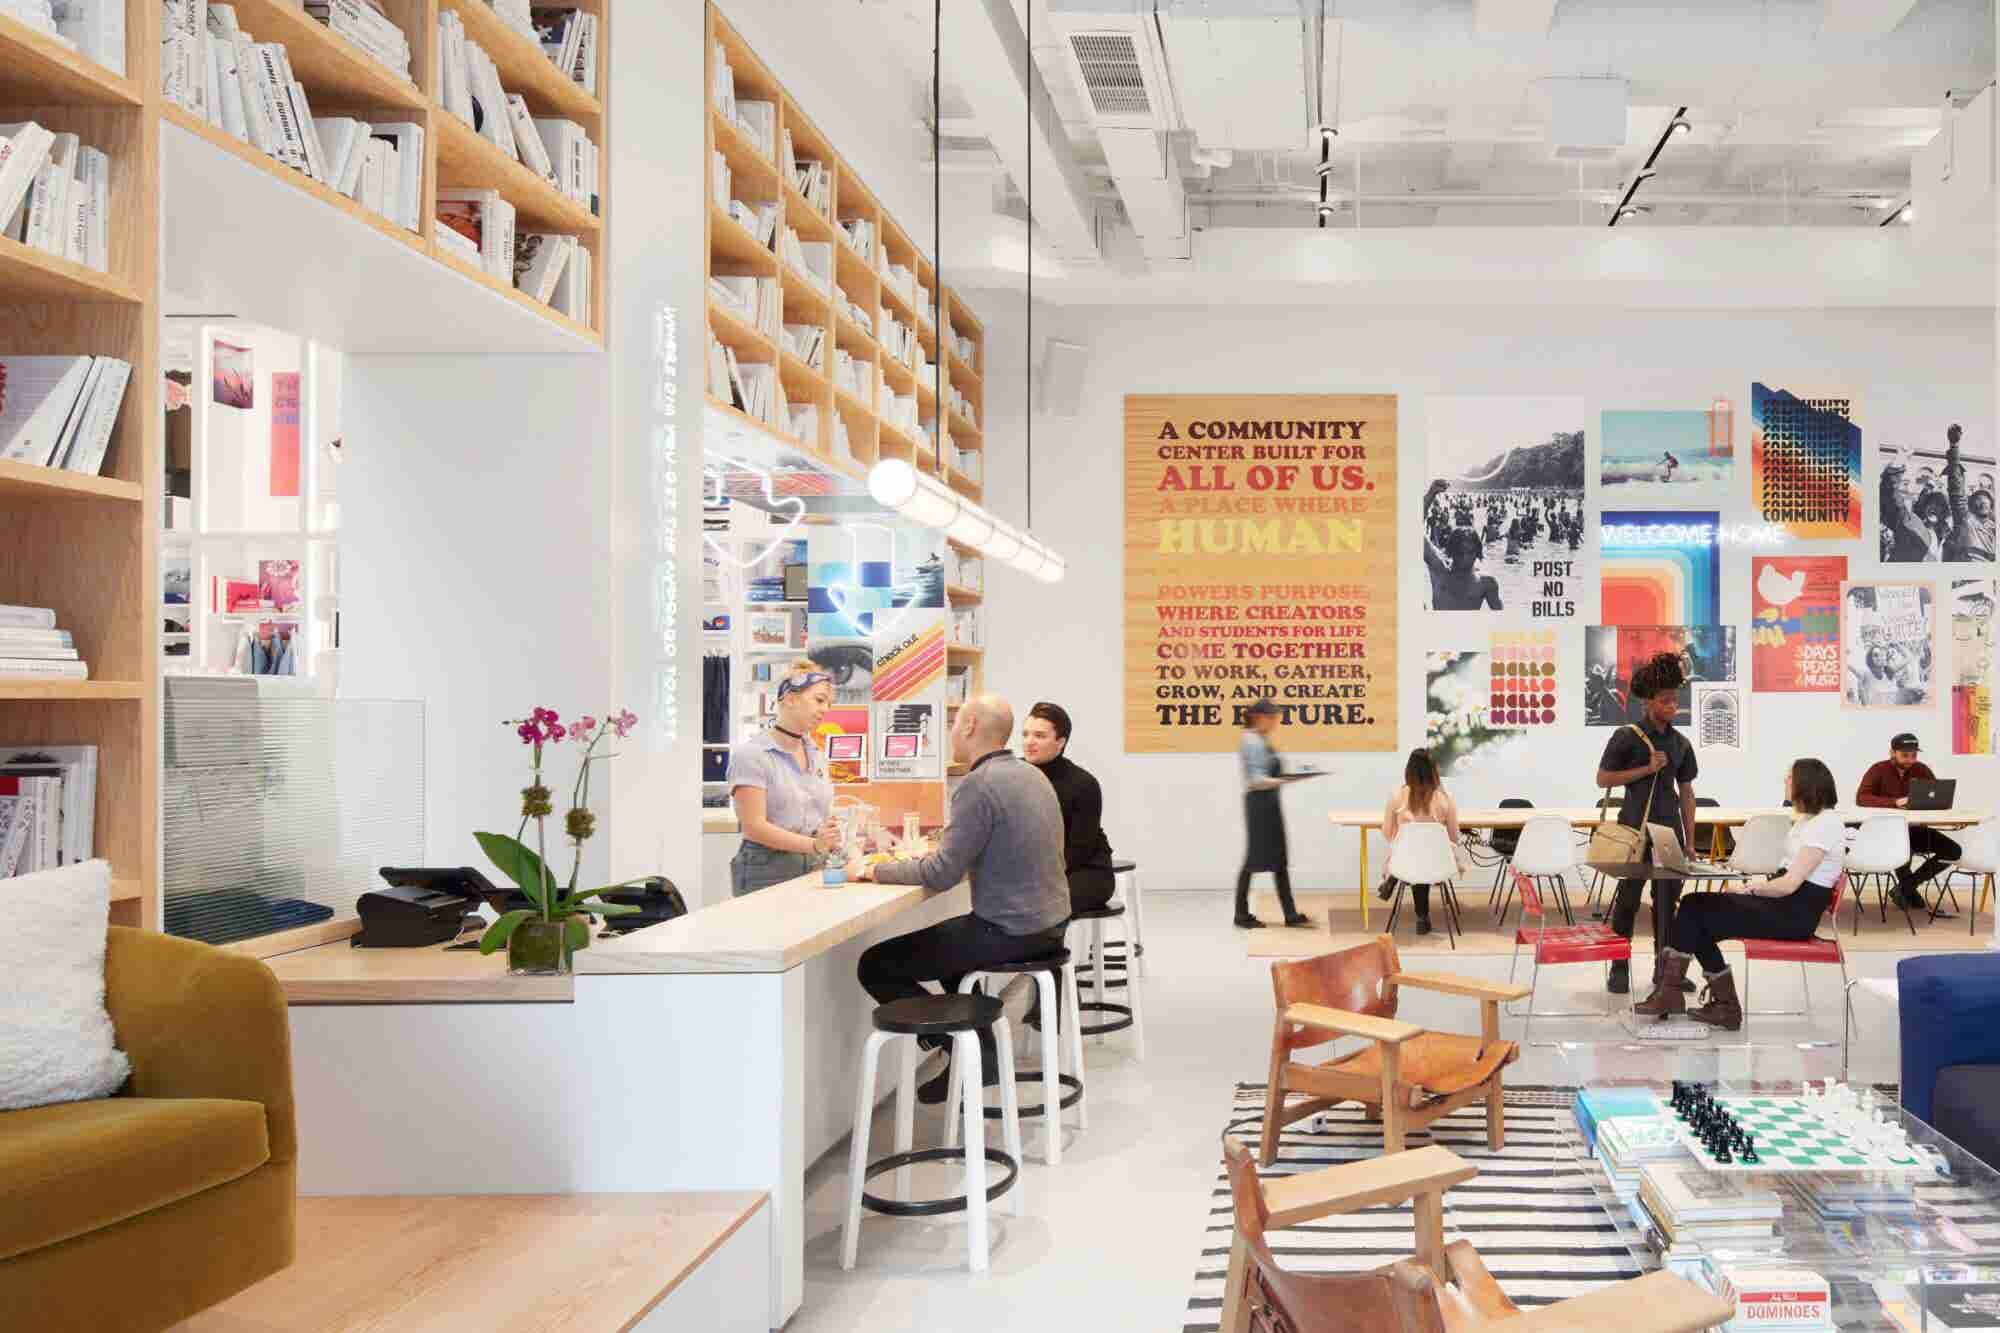 Coworking Space Behemoth WeWork Launches Retail and Coworking Space Th...